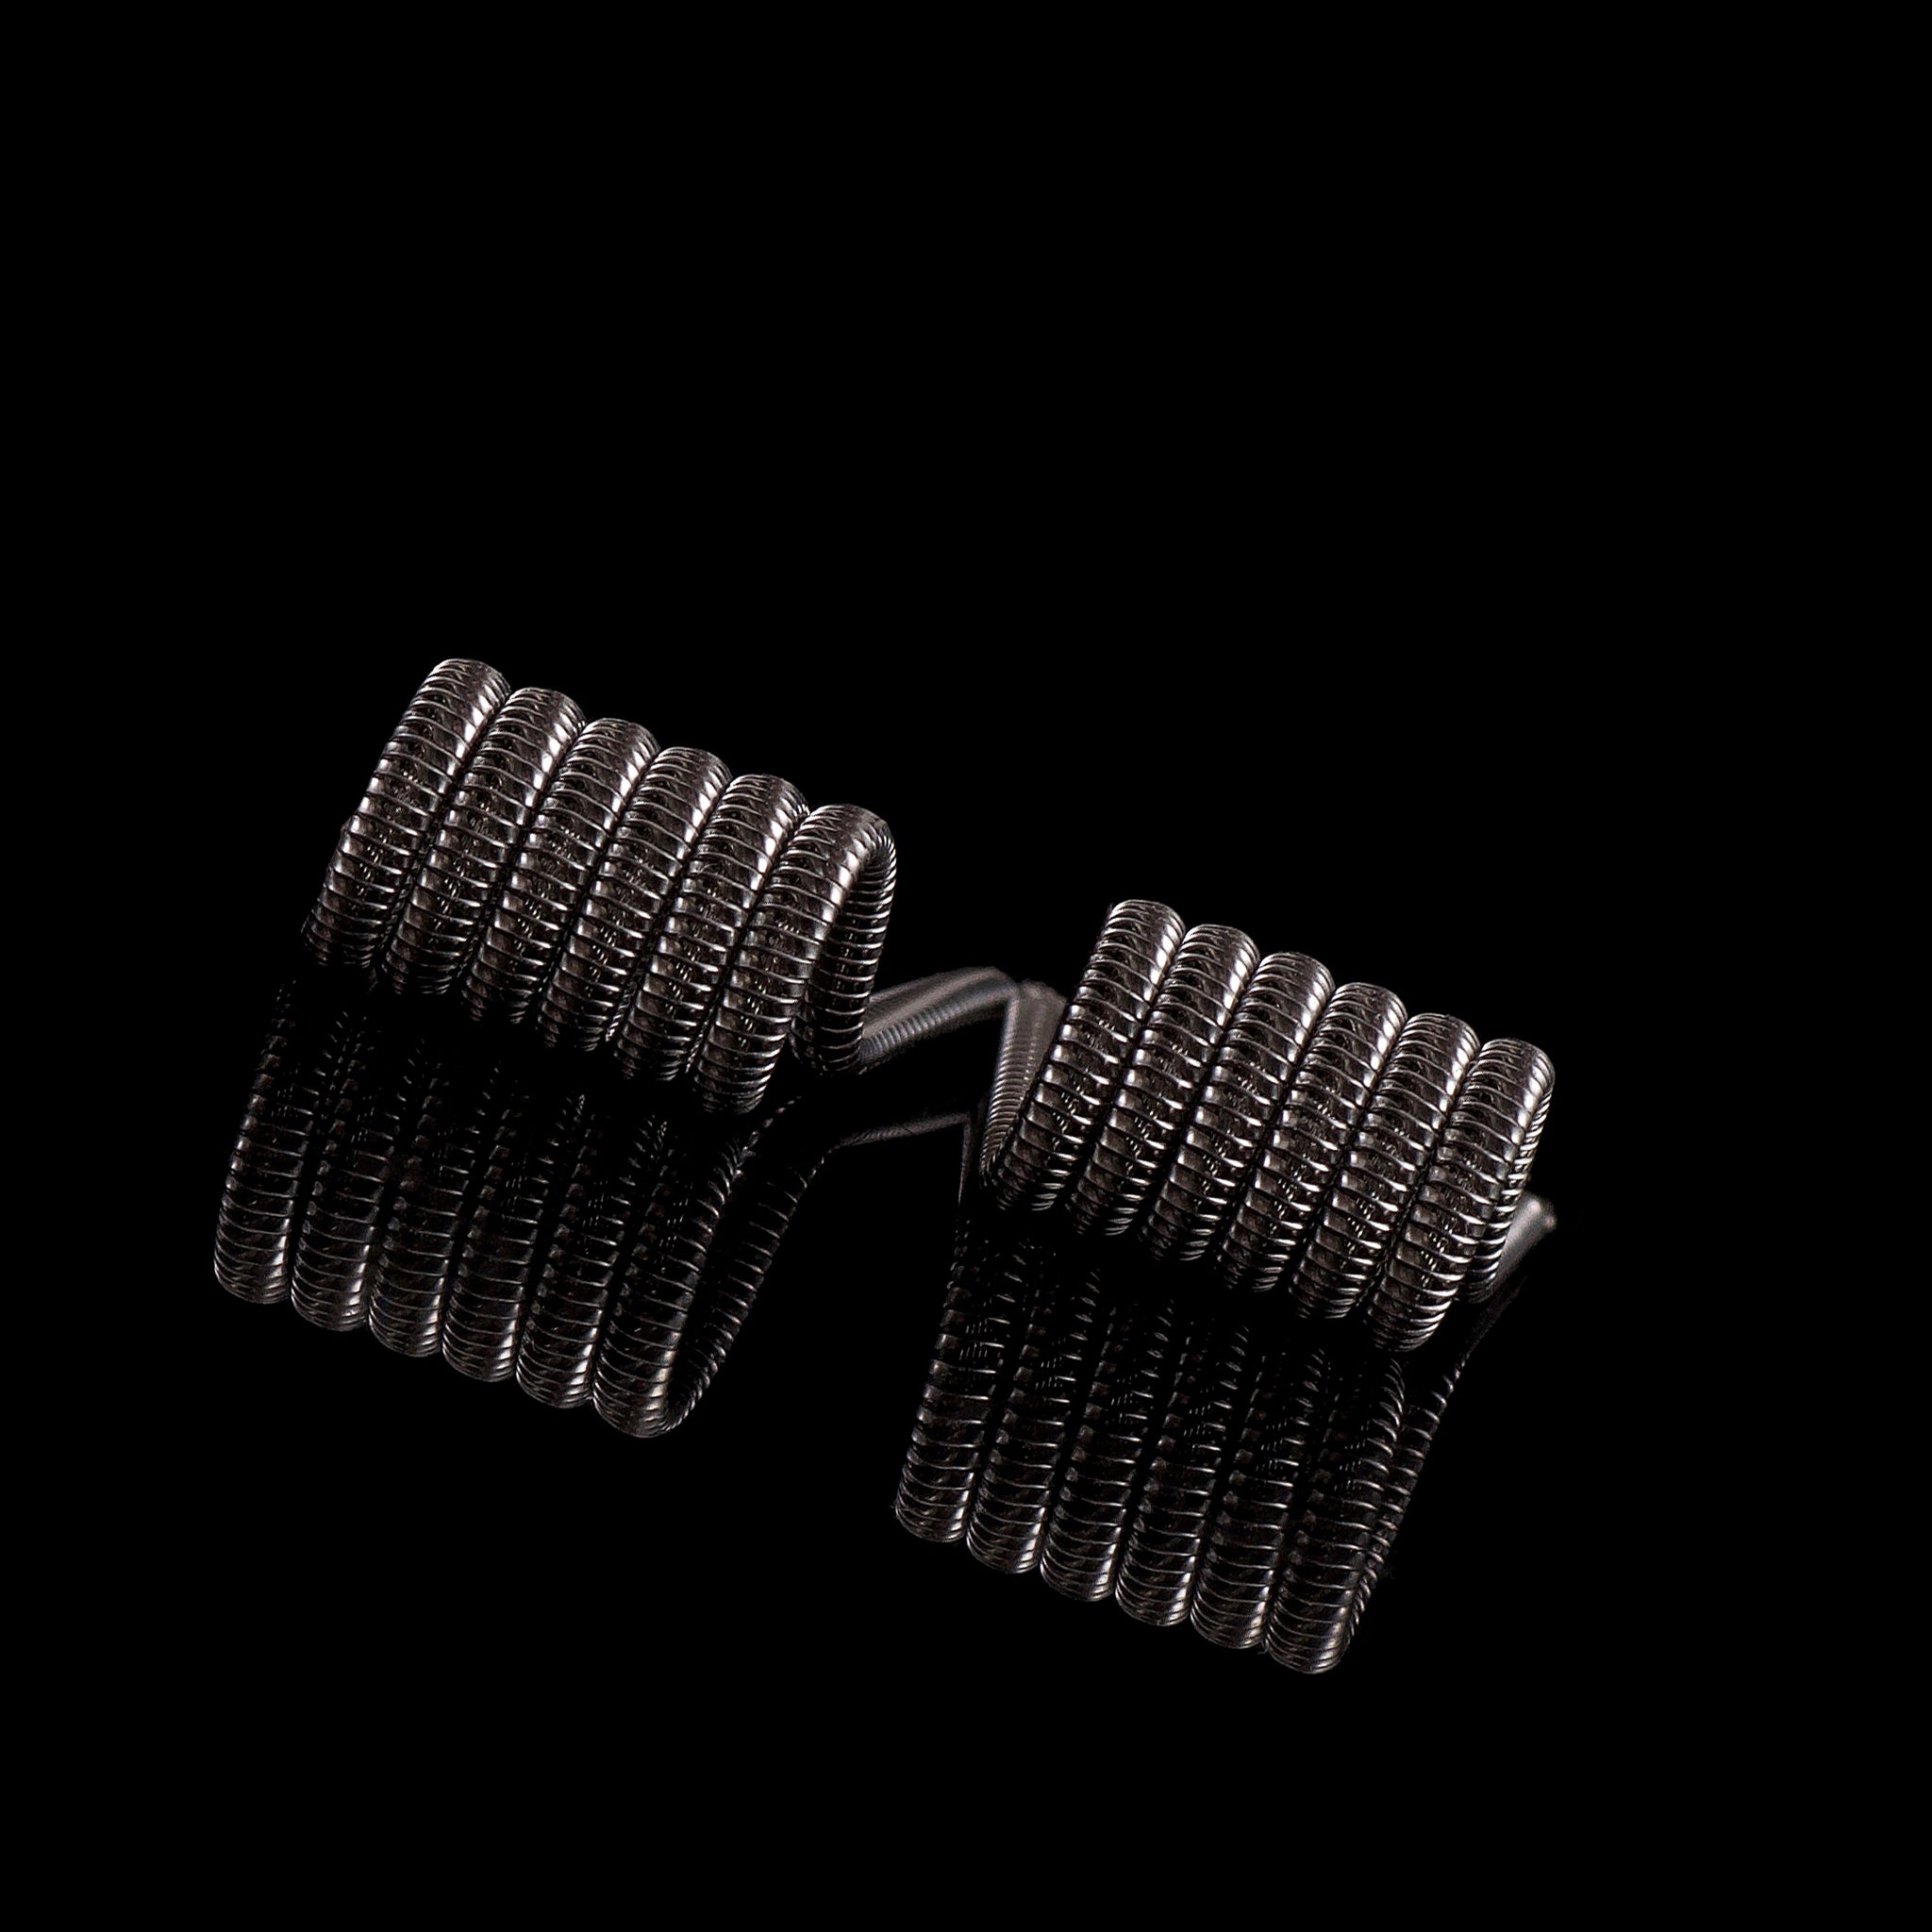 Tsuka framed Staple